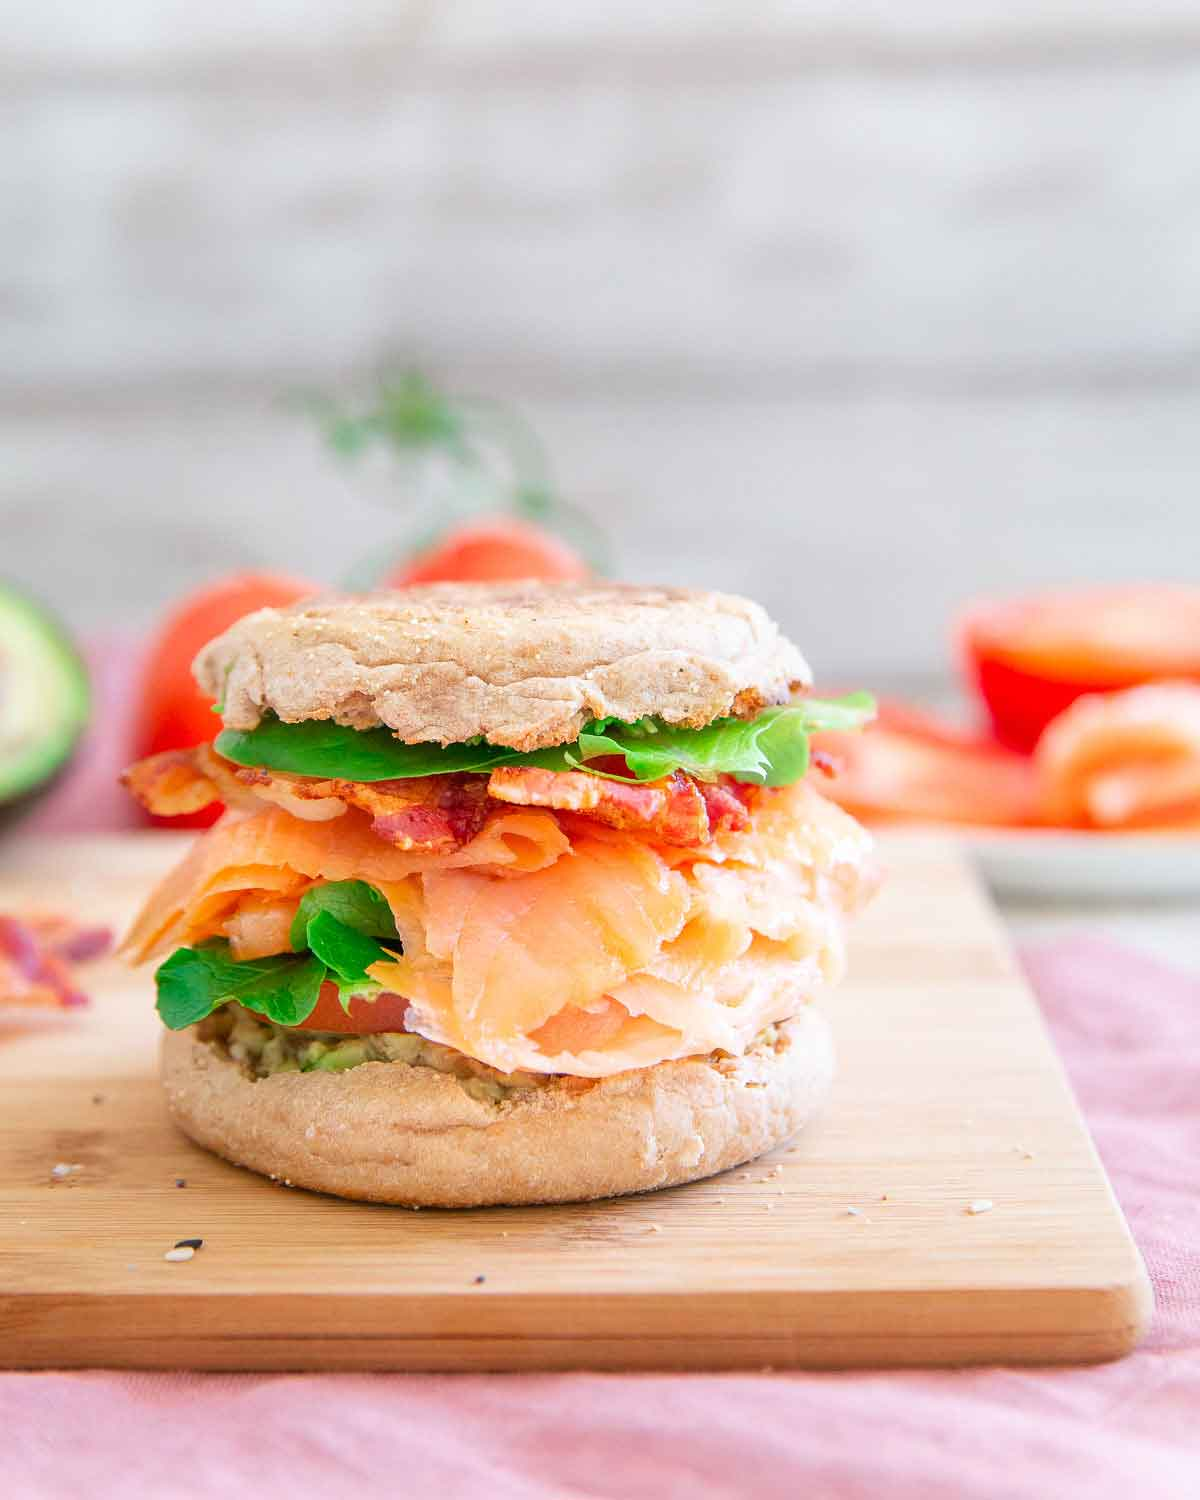 This smoked salmon BLT with avocado and everything bagel seasoning is the ultimate weekend breakfast or brunch. Pair with a good Bloody Mary and enjoy!